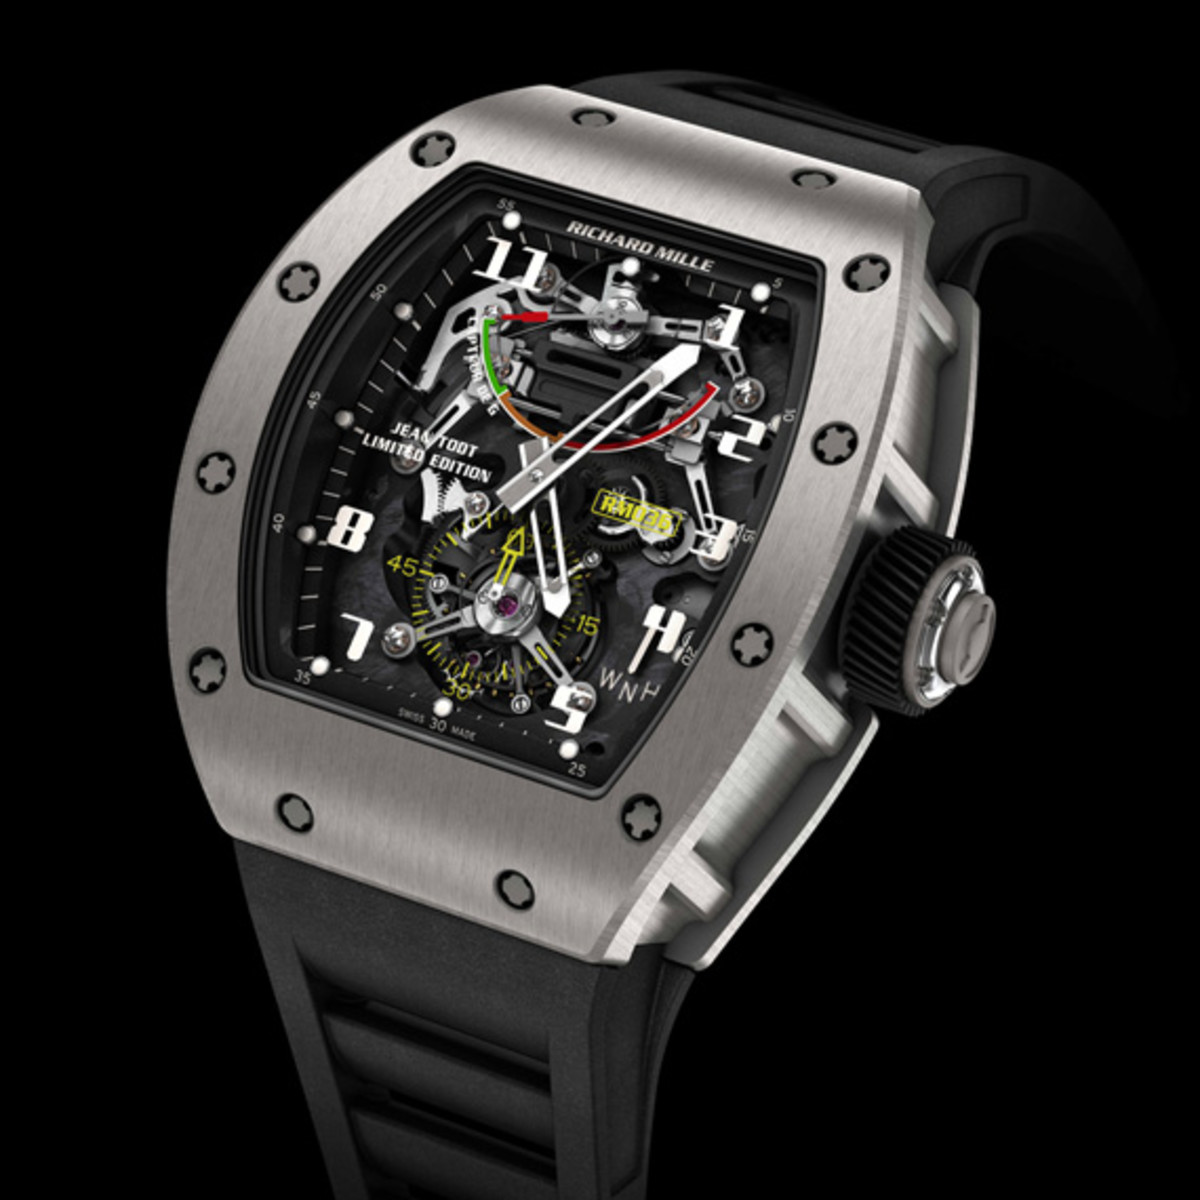 richard-mille-rm036-tourbillon-g-senor-jean-todt-watch-01